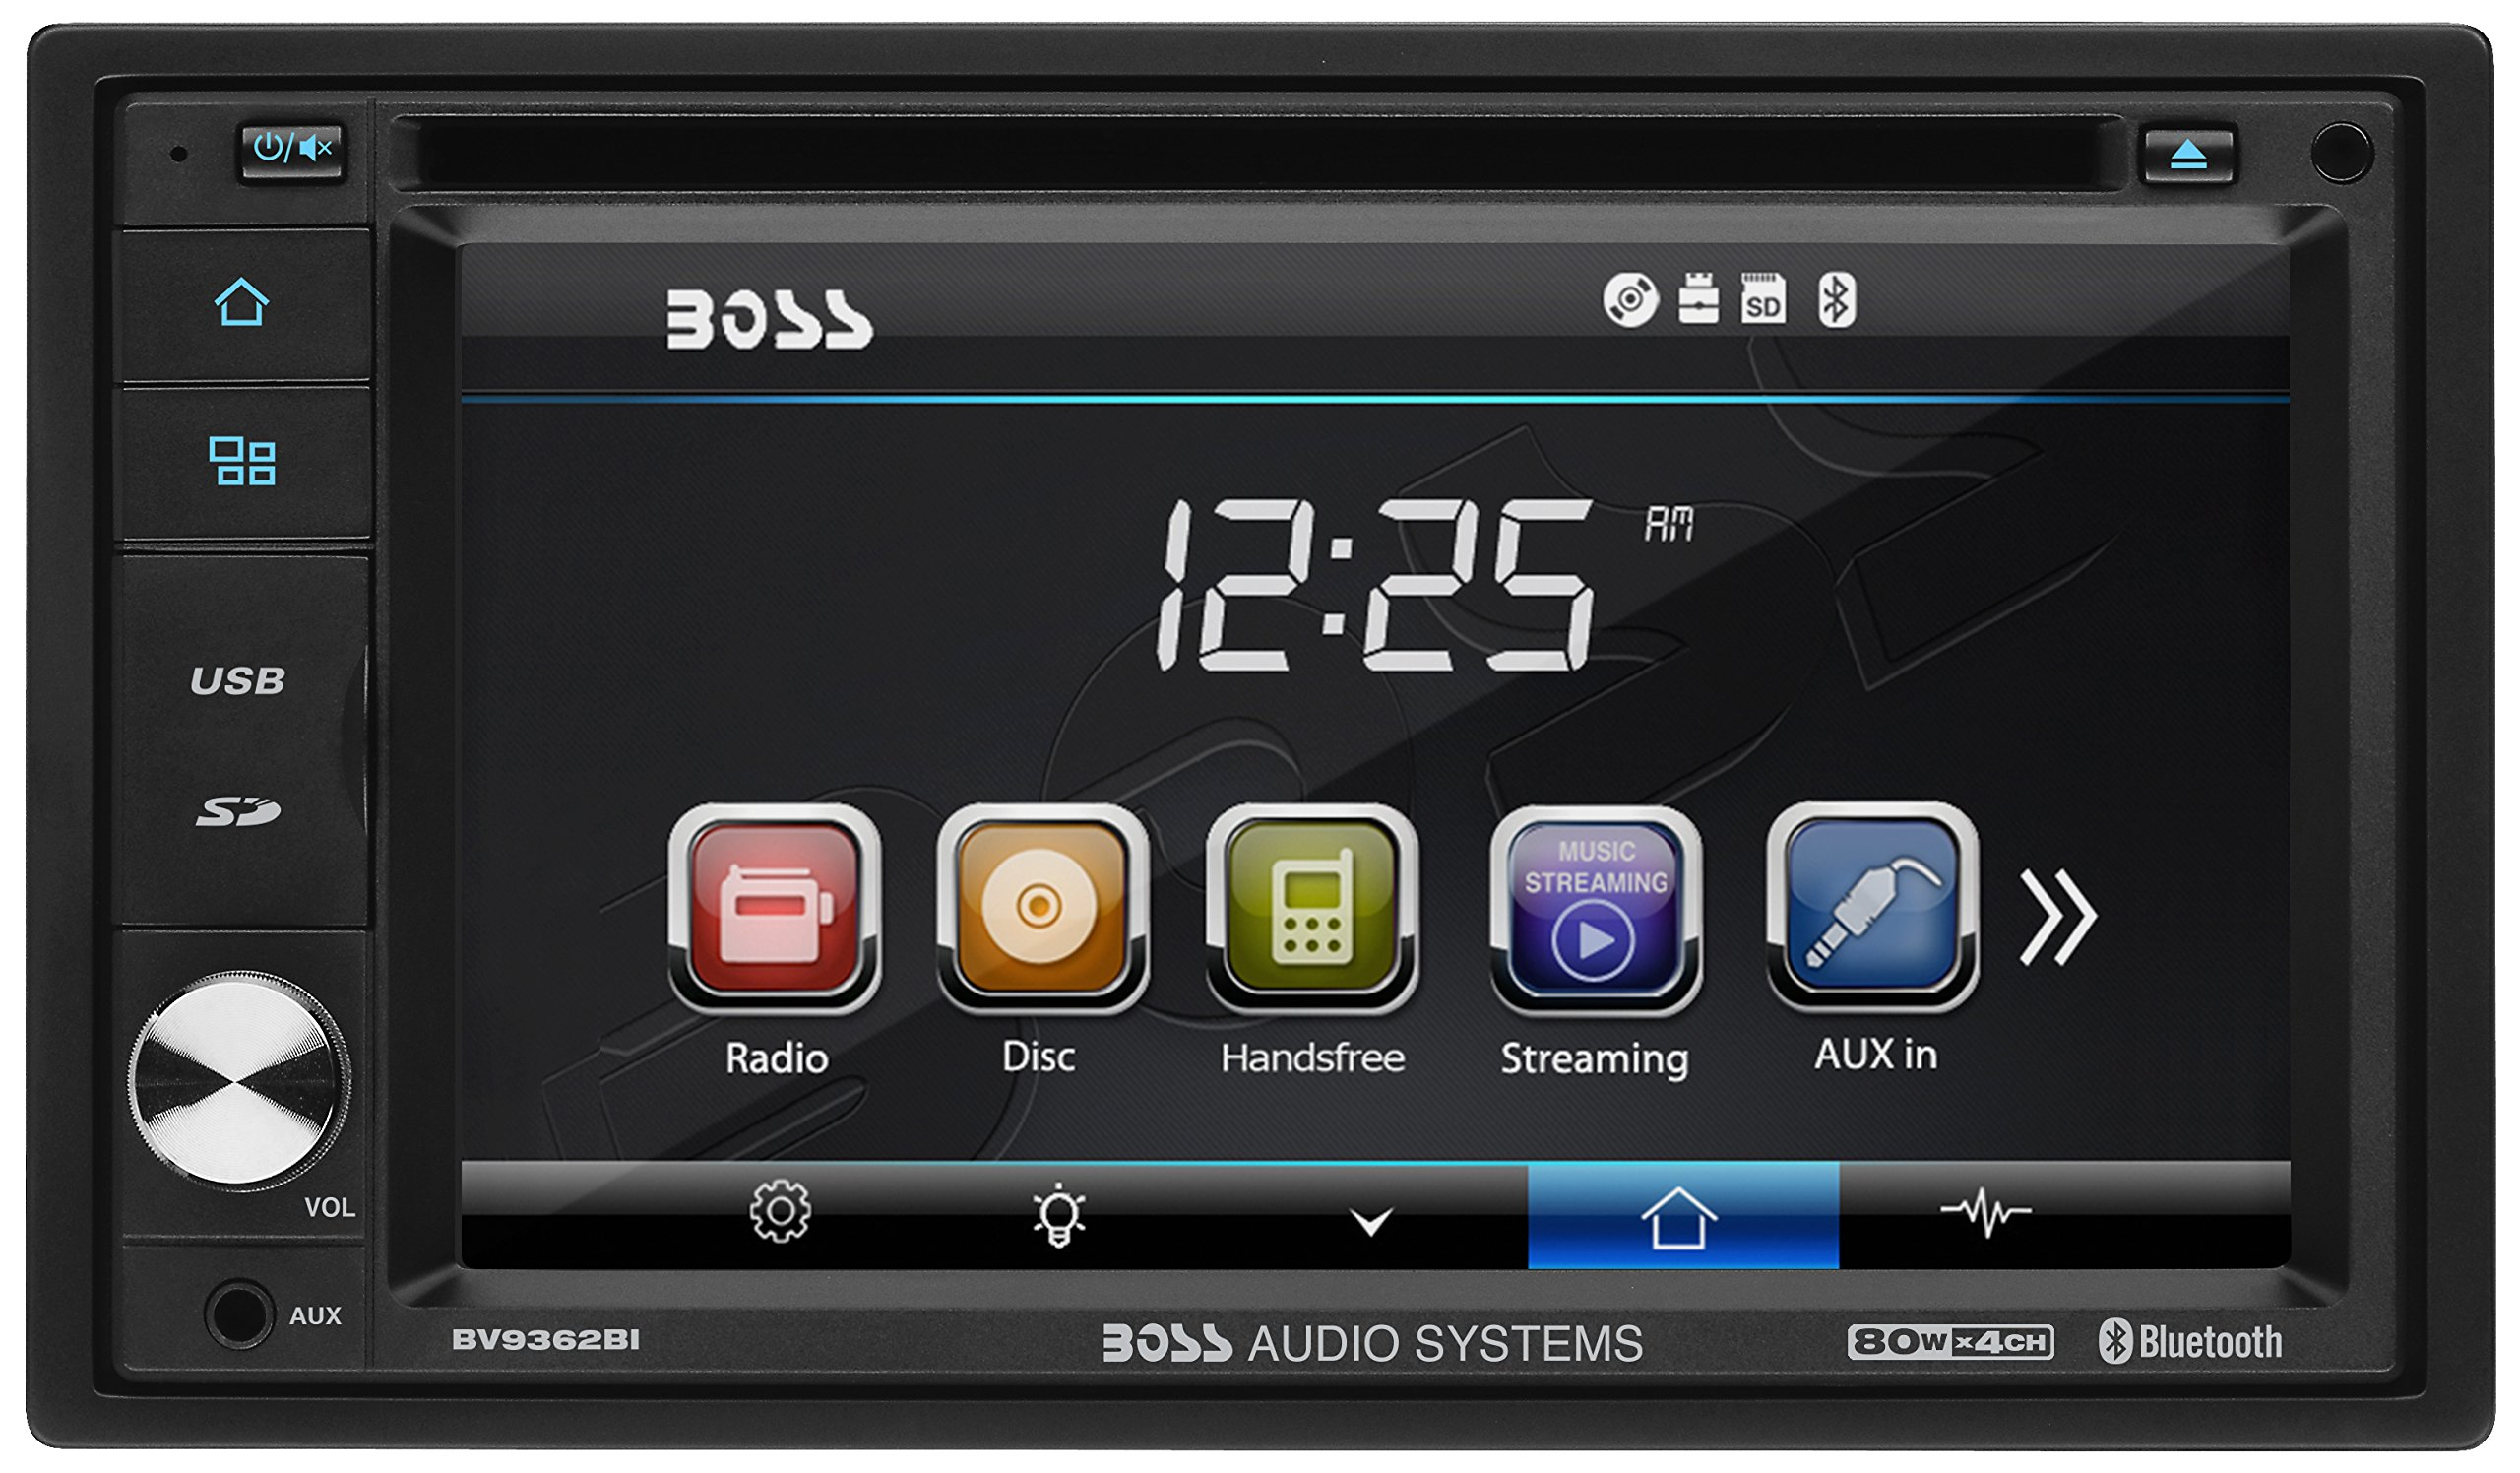 BOSS Audio Systems BV9362BI Car DVD Player - Double Din, Bluetooth Audio and Calling, 6.2 Inch LCD Touchscreen Monitor, MP3 Player, CD, DVD, WMA, USB, SD, Auxiliary Input, AM FM Radio Receiver by BOSS Audio Systems